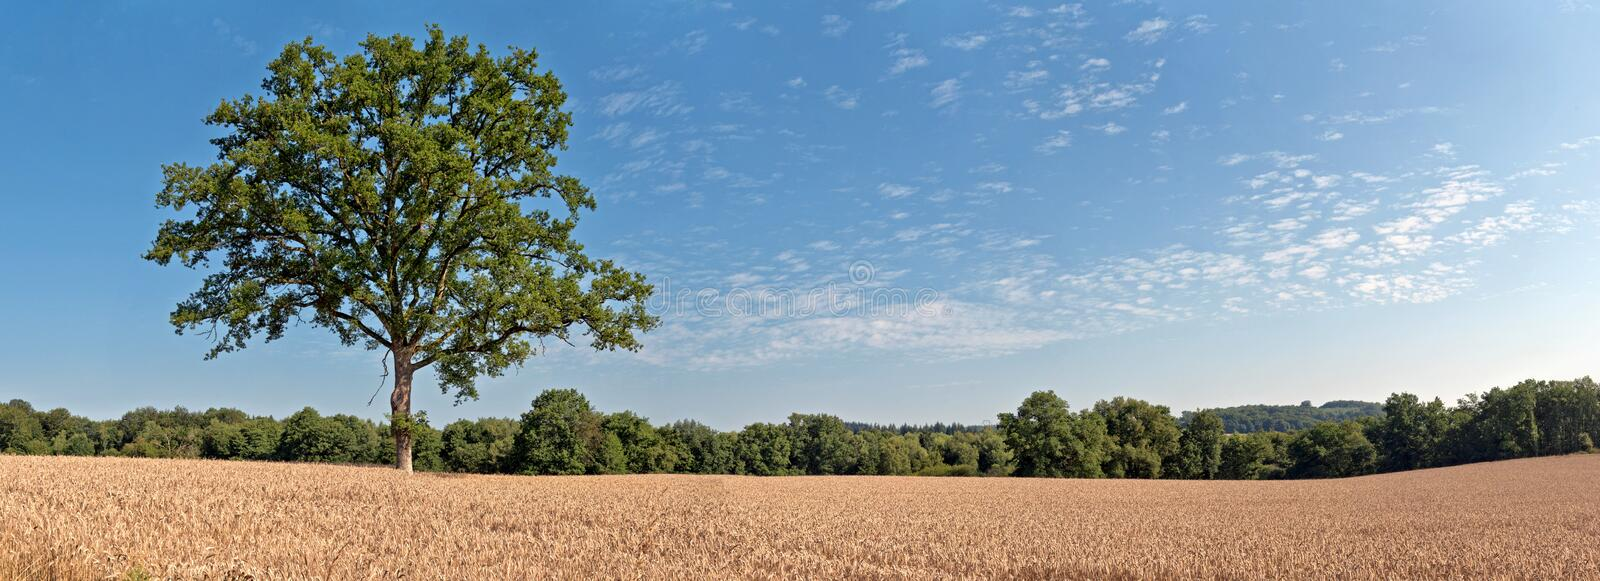 Solitude green tree in wheat field with blue cloudy sky. Panoramic shot. royalty free stock image